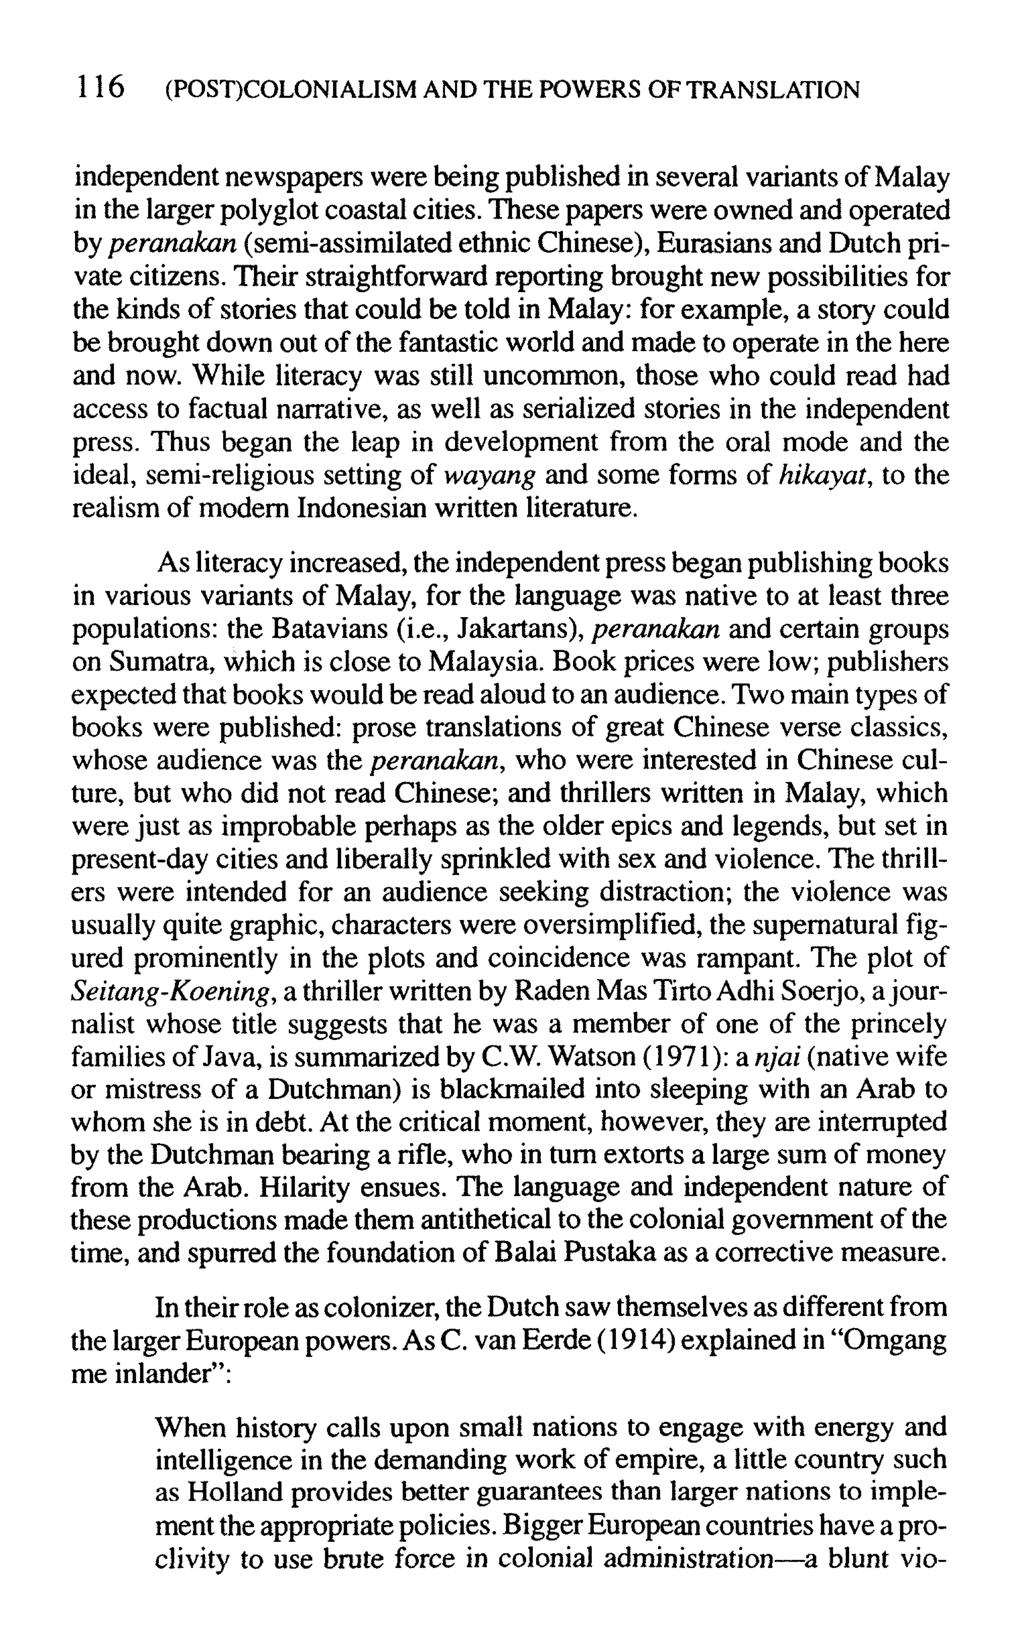 116 (POST)COLONIALISM AND THE POWERS OF TRANSLATION independent newspapers were being published in several variants of Malay in the larger polyglot coastal cities.